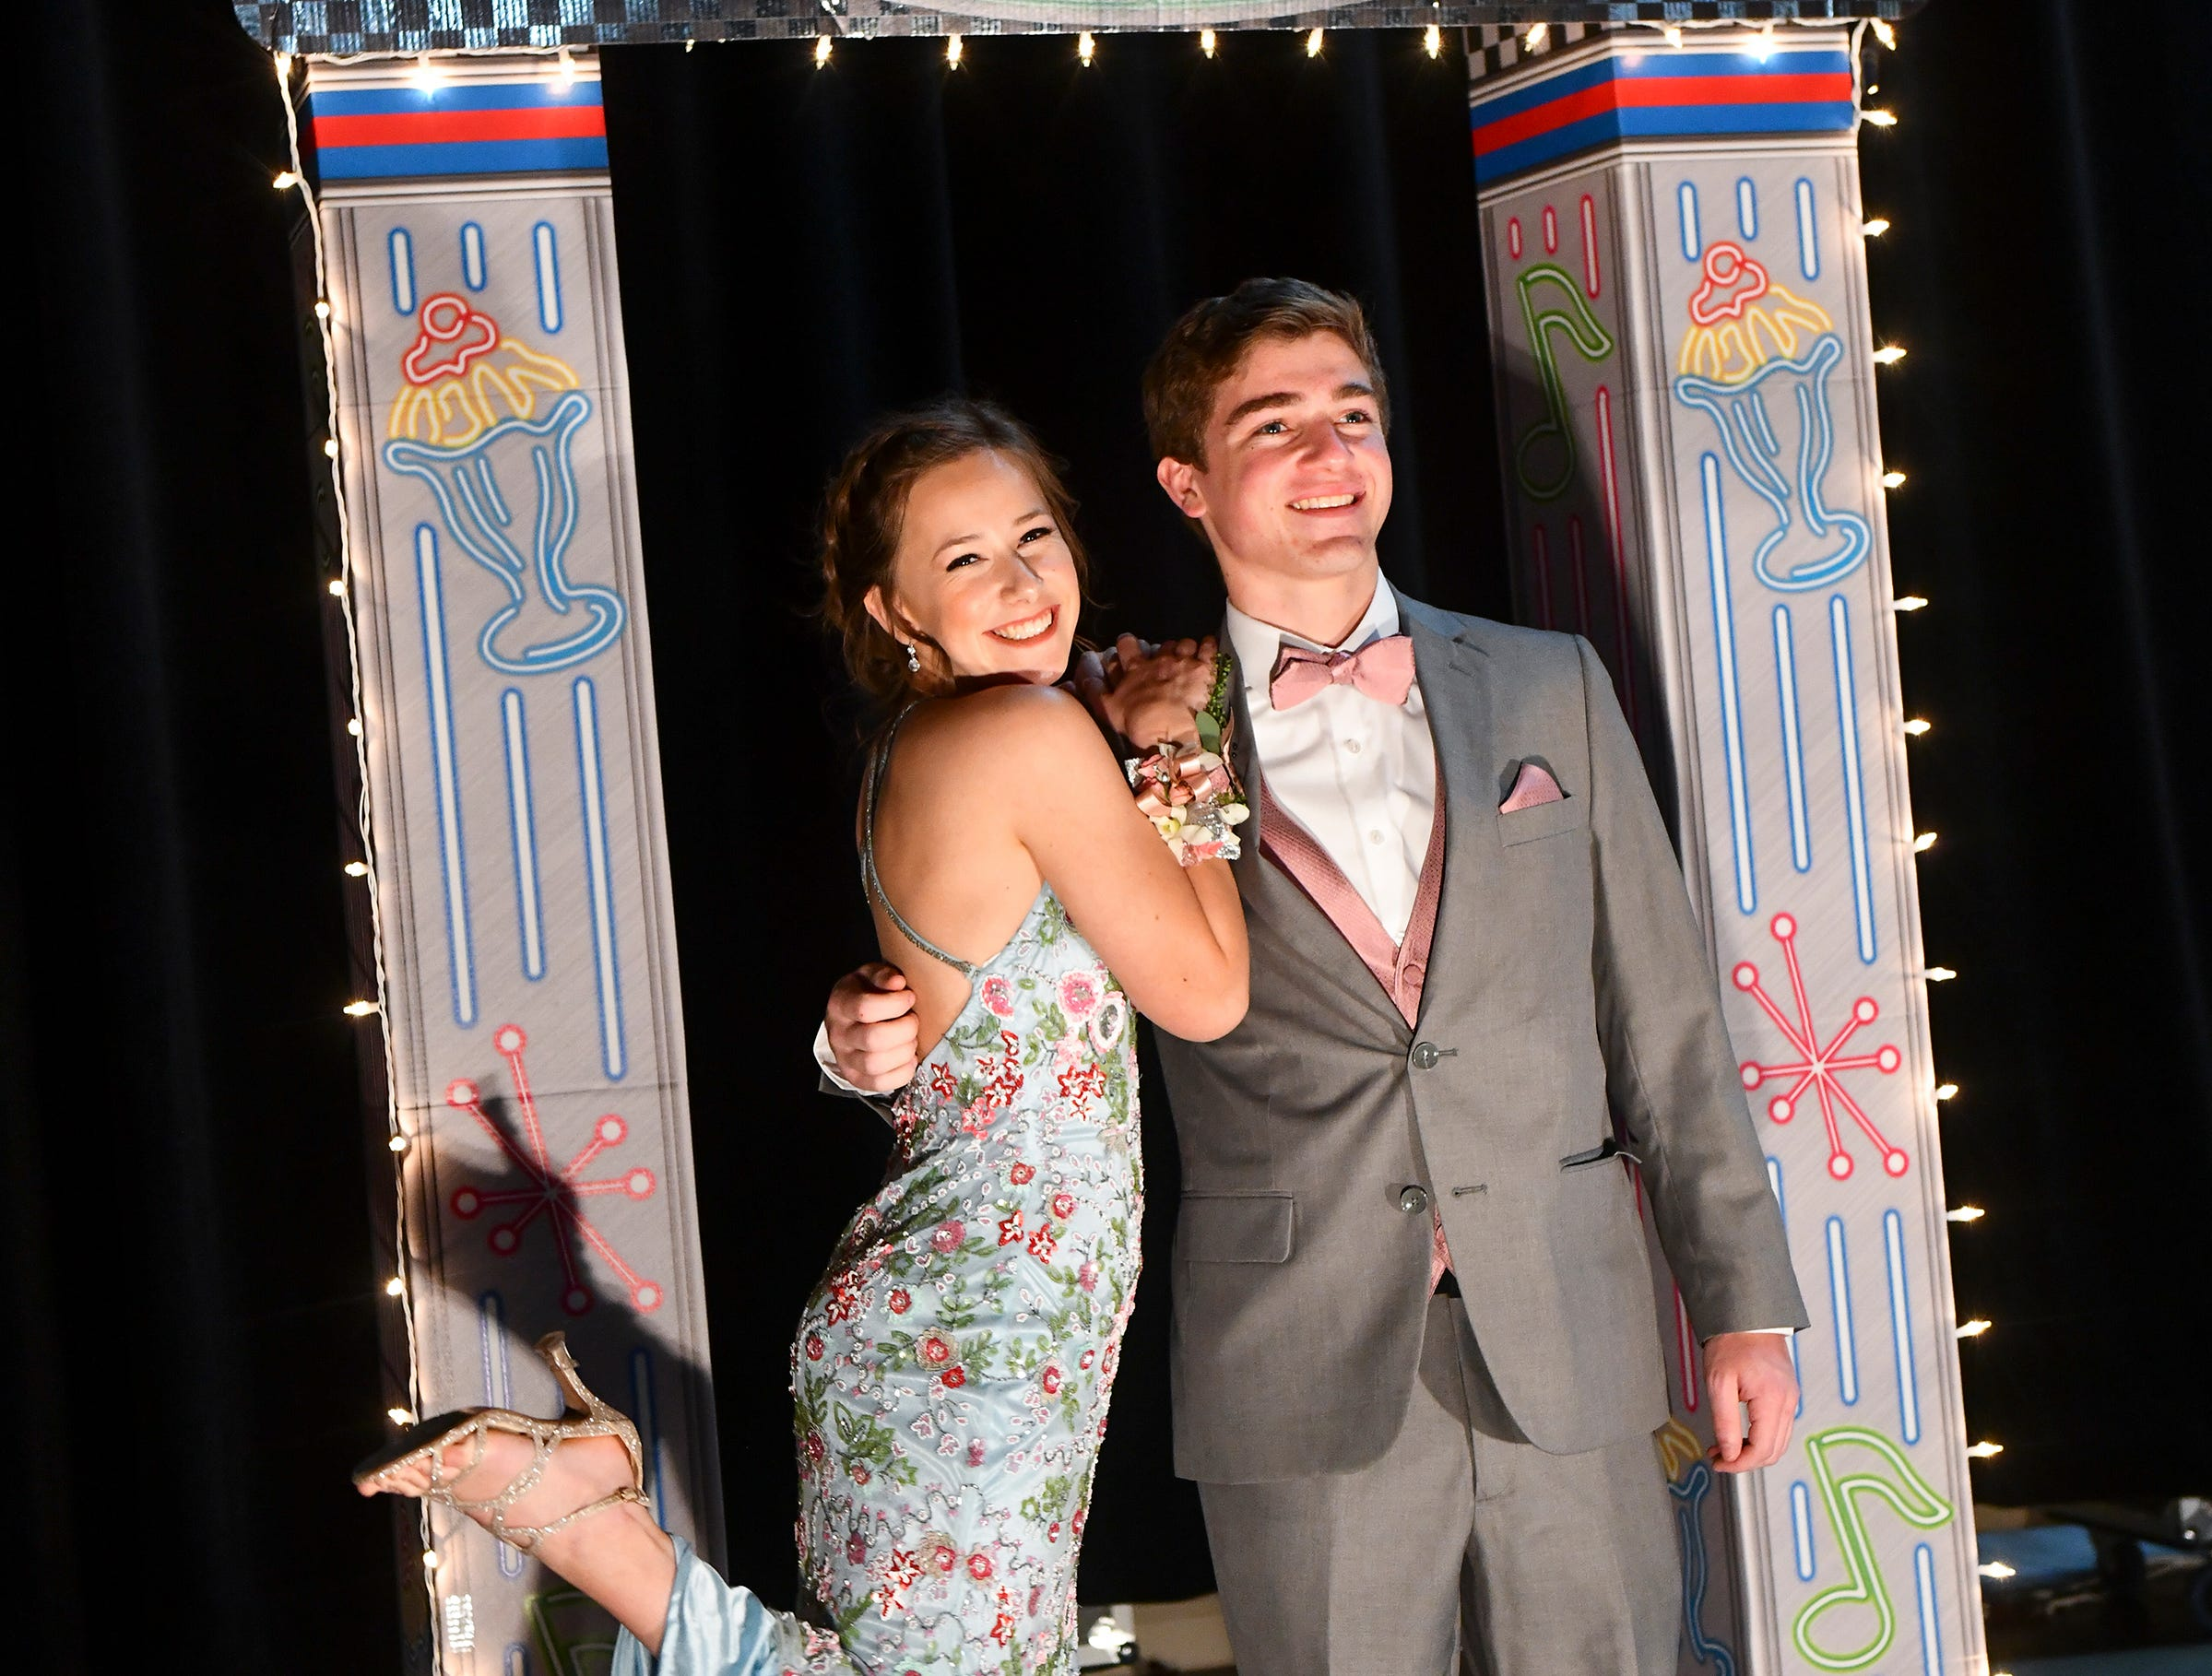 Promgoers strike a pose during Sartell High School's prom grand march Saturday, May 4, at the River's Edge Convention Center in St. Cloud.